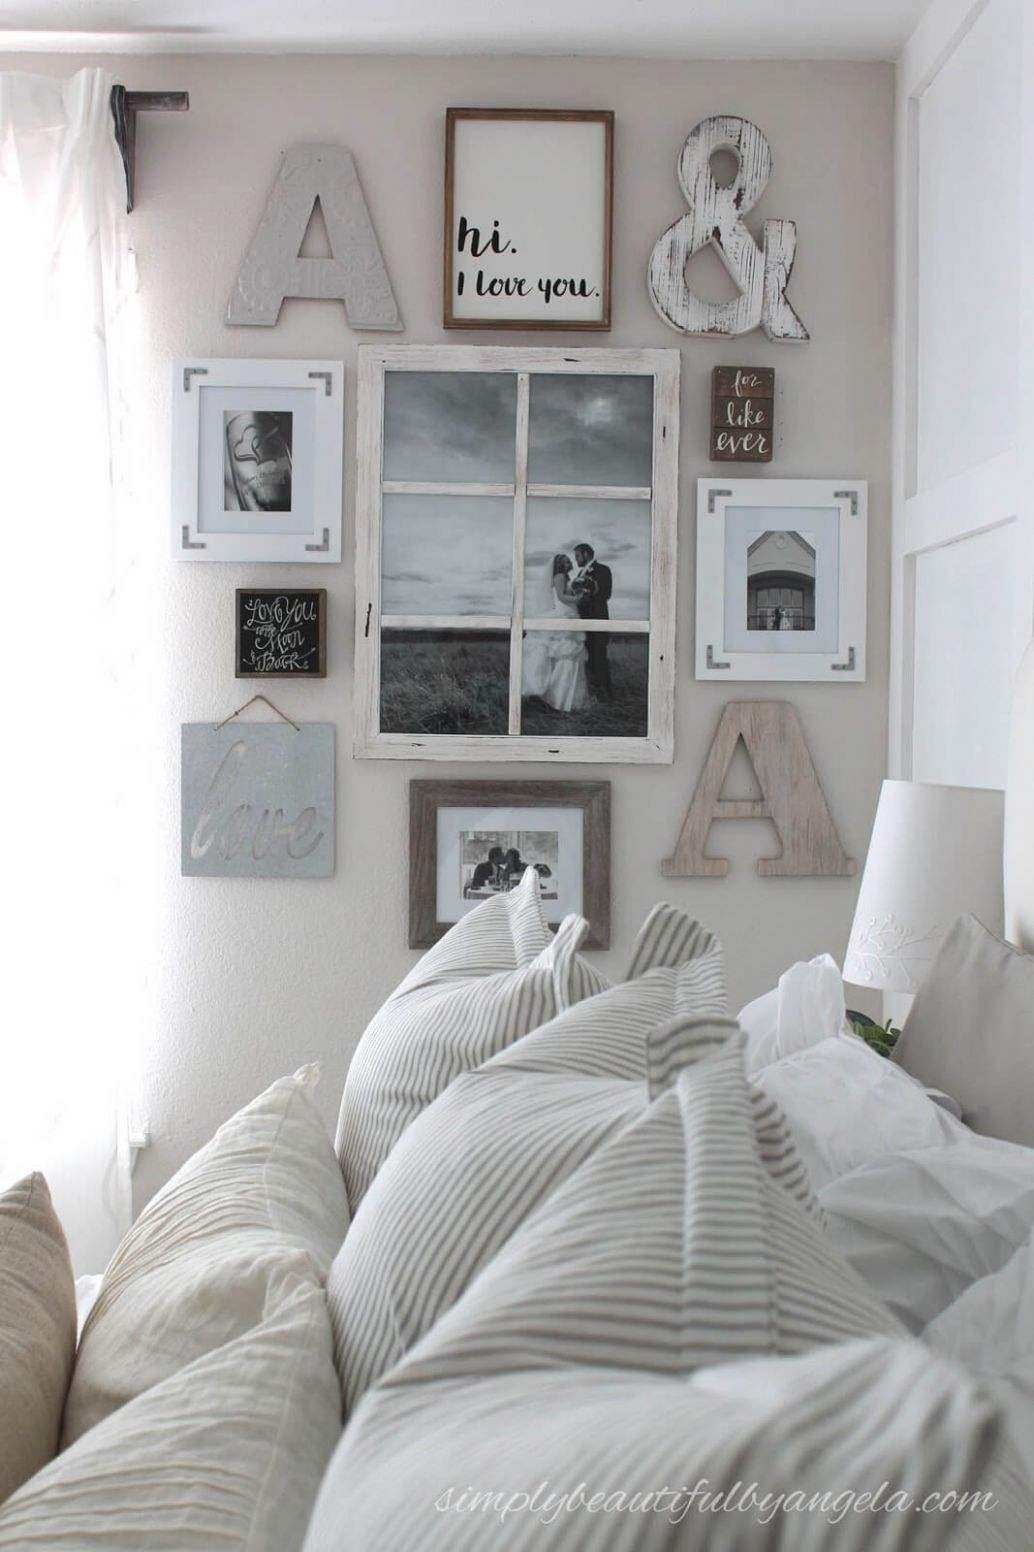 Collection Love Memories Window Best Bedroom Wall Decor Ideas ..